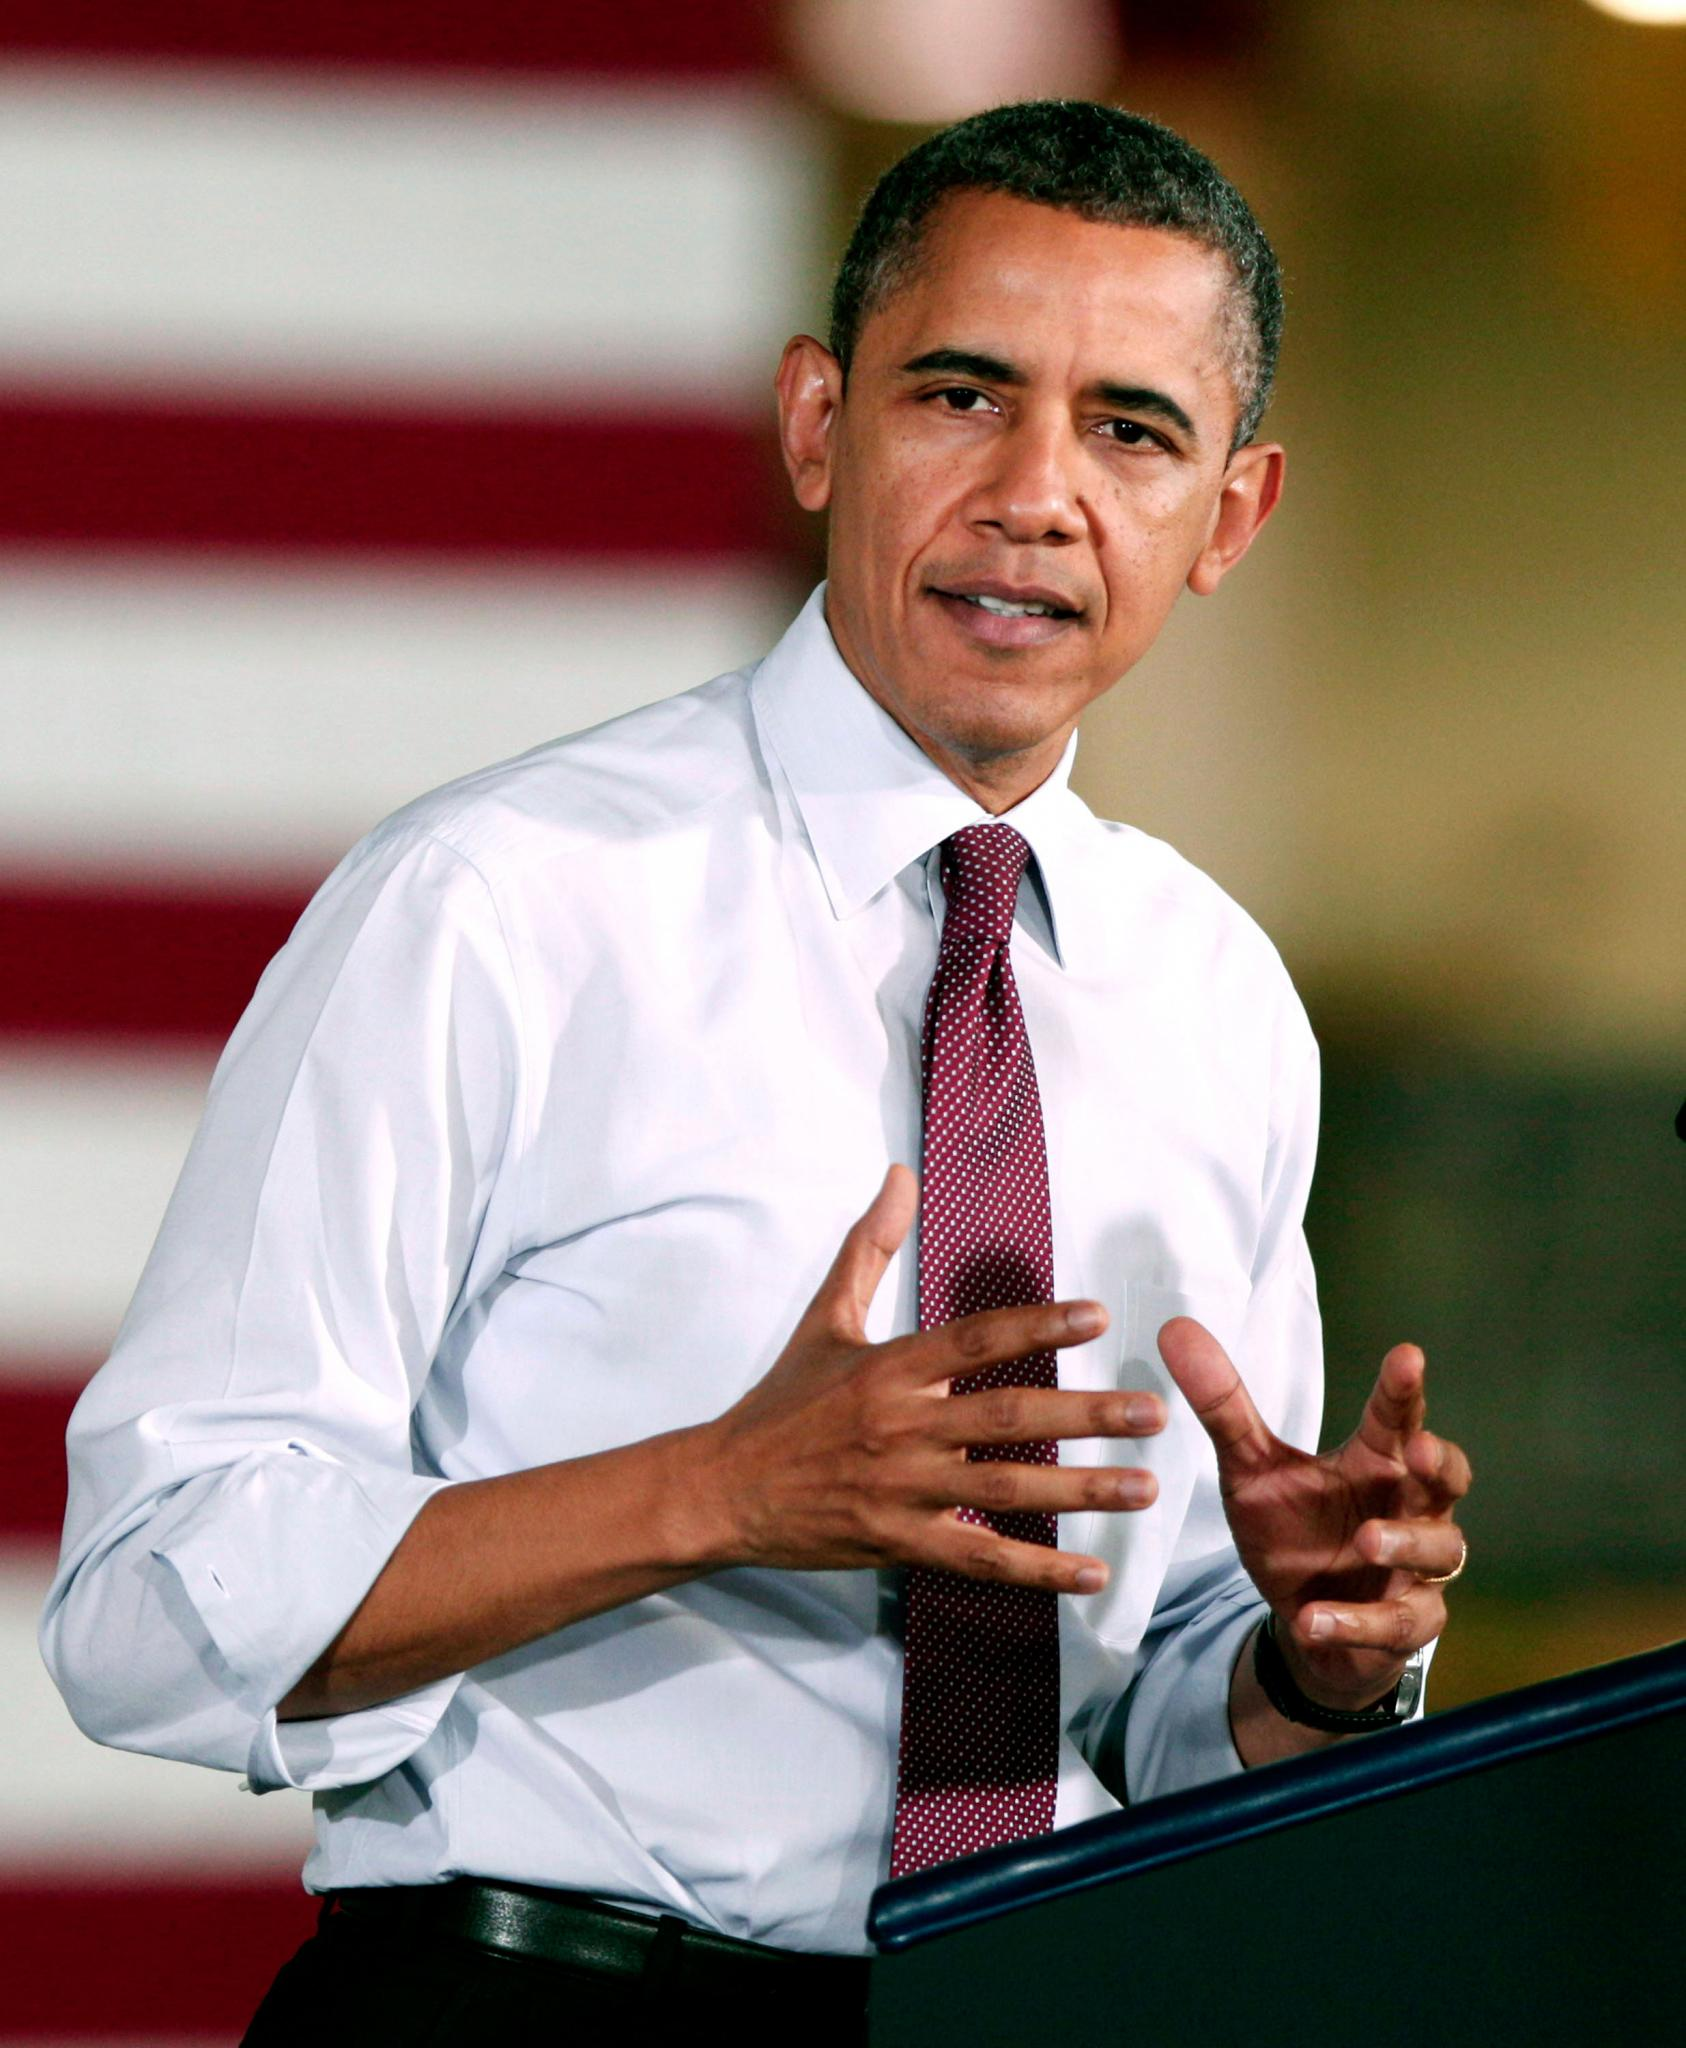 ESSENCE Poll: Was President Obama's Comment Inappropriate?